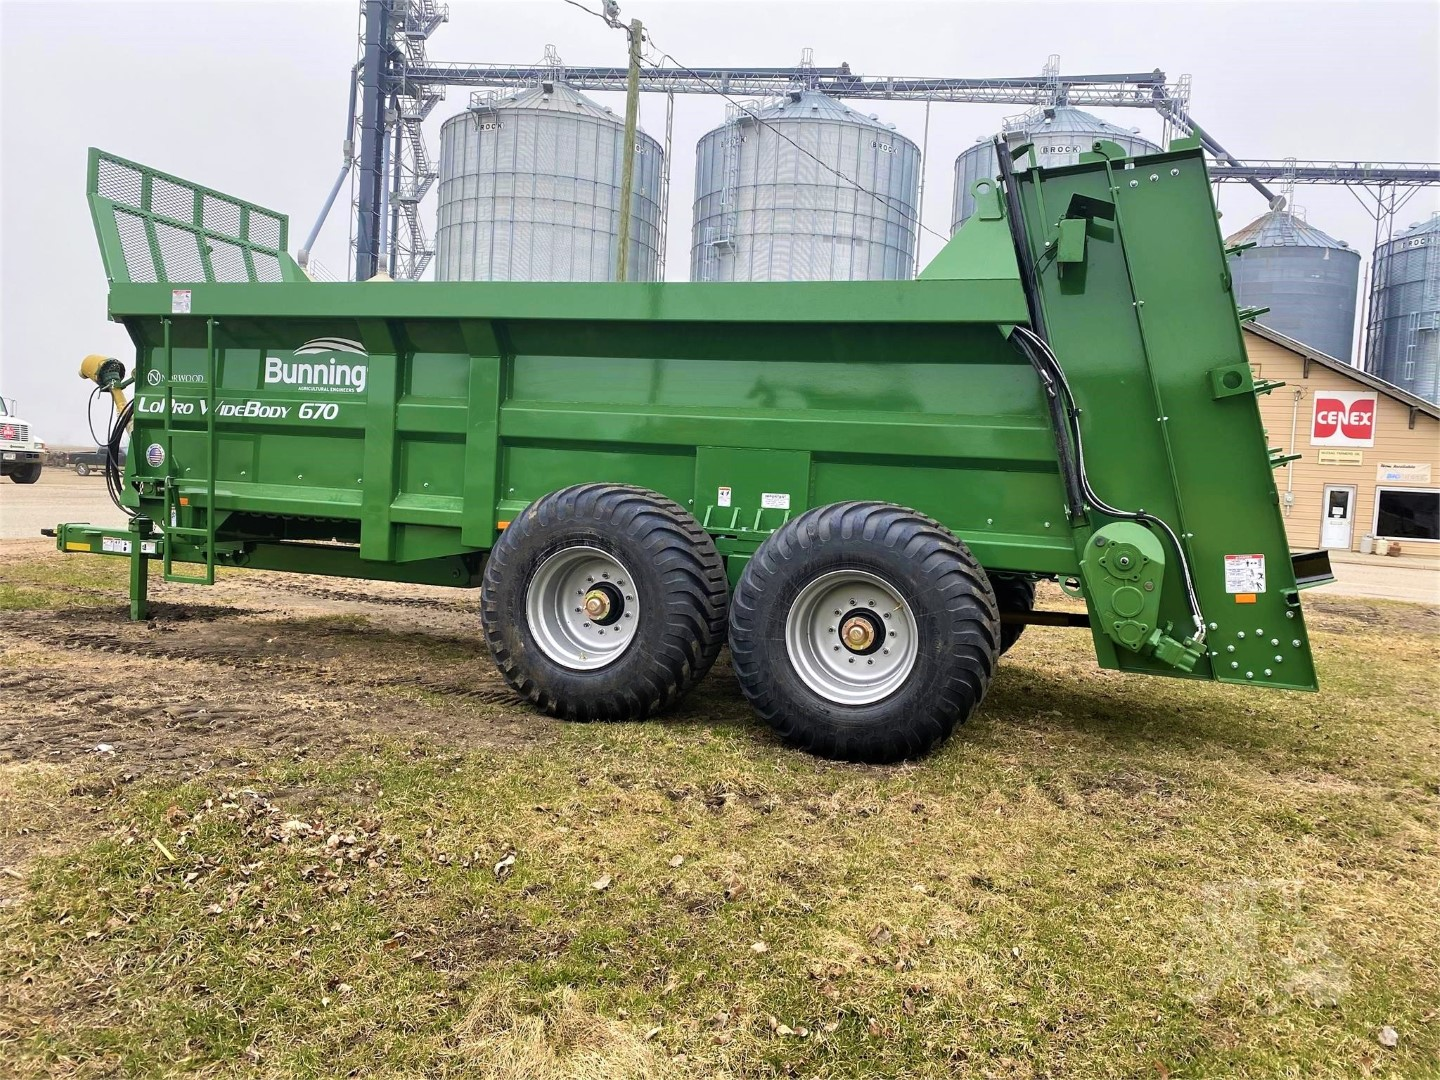 LoPro US670 Widebody with slurry door, lift off augers, stone guard extensions and 600/50 R22.5 wheels